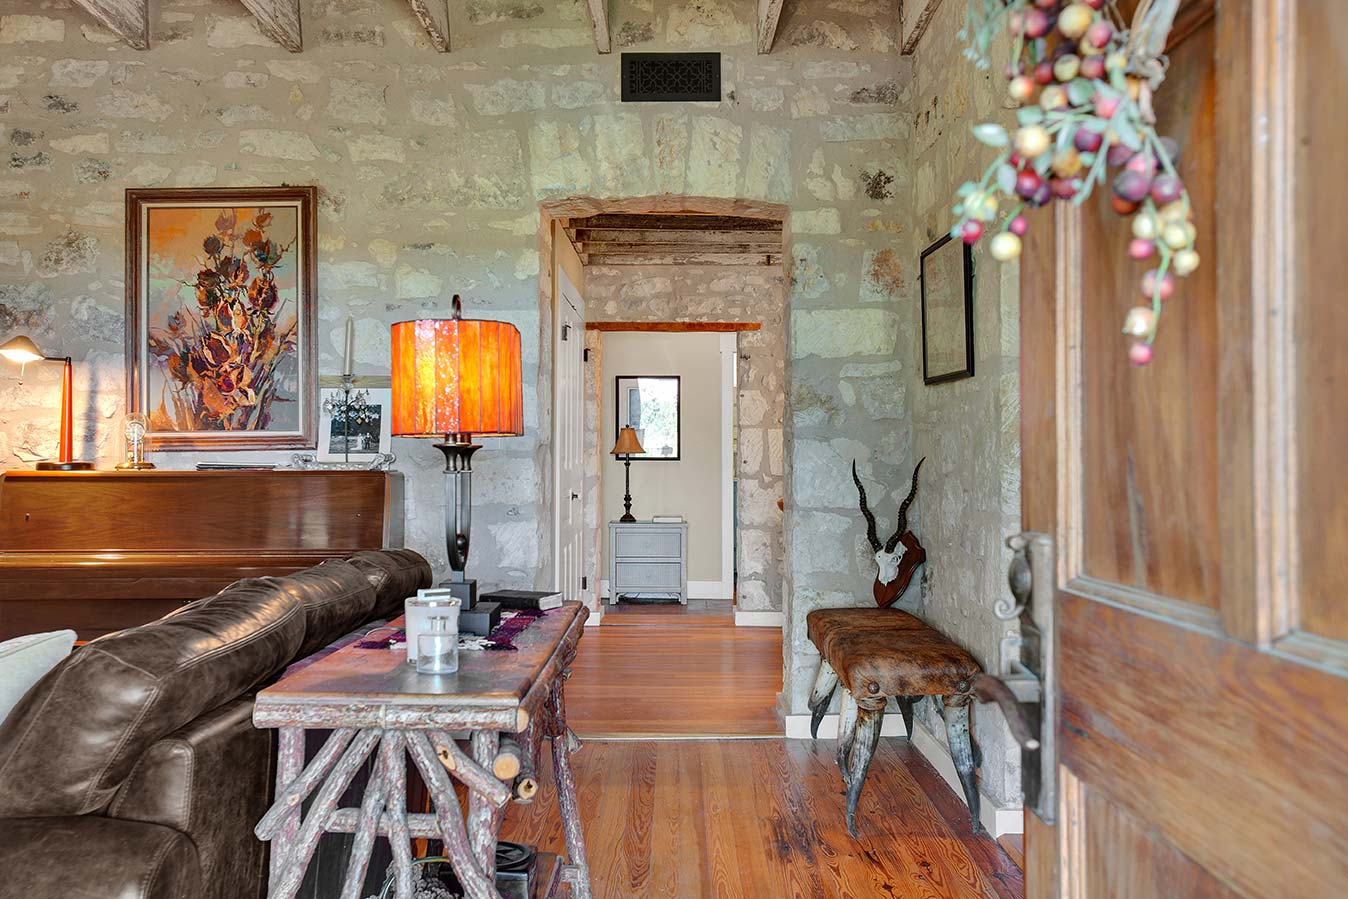 fredericksburg-realty-squaw-creek-ranch-real-estate-land-for-sale-home-house-historic-10.jpg